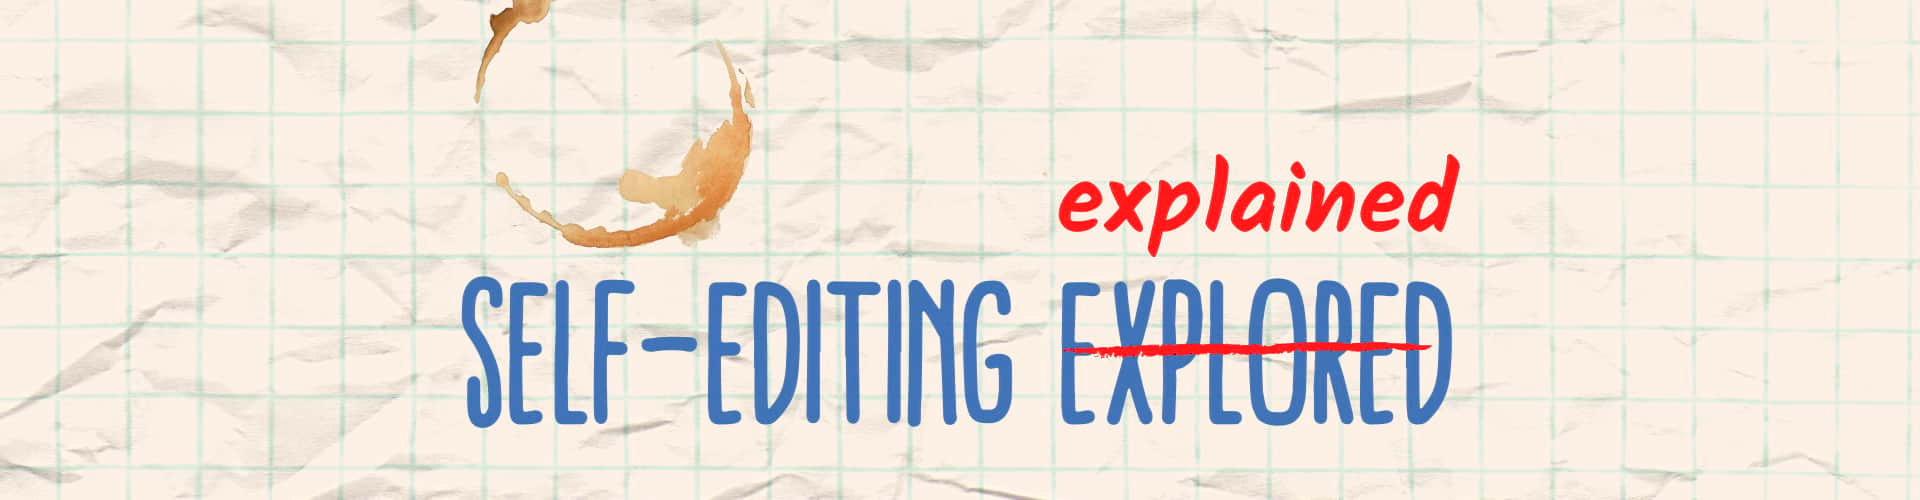 Self-editing explained, how to edit your own book, how to edit